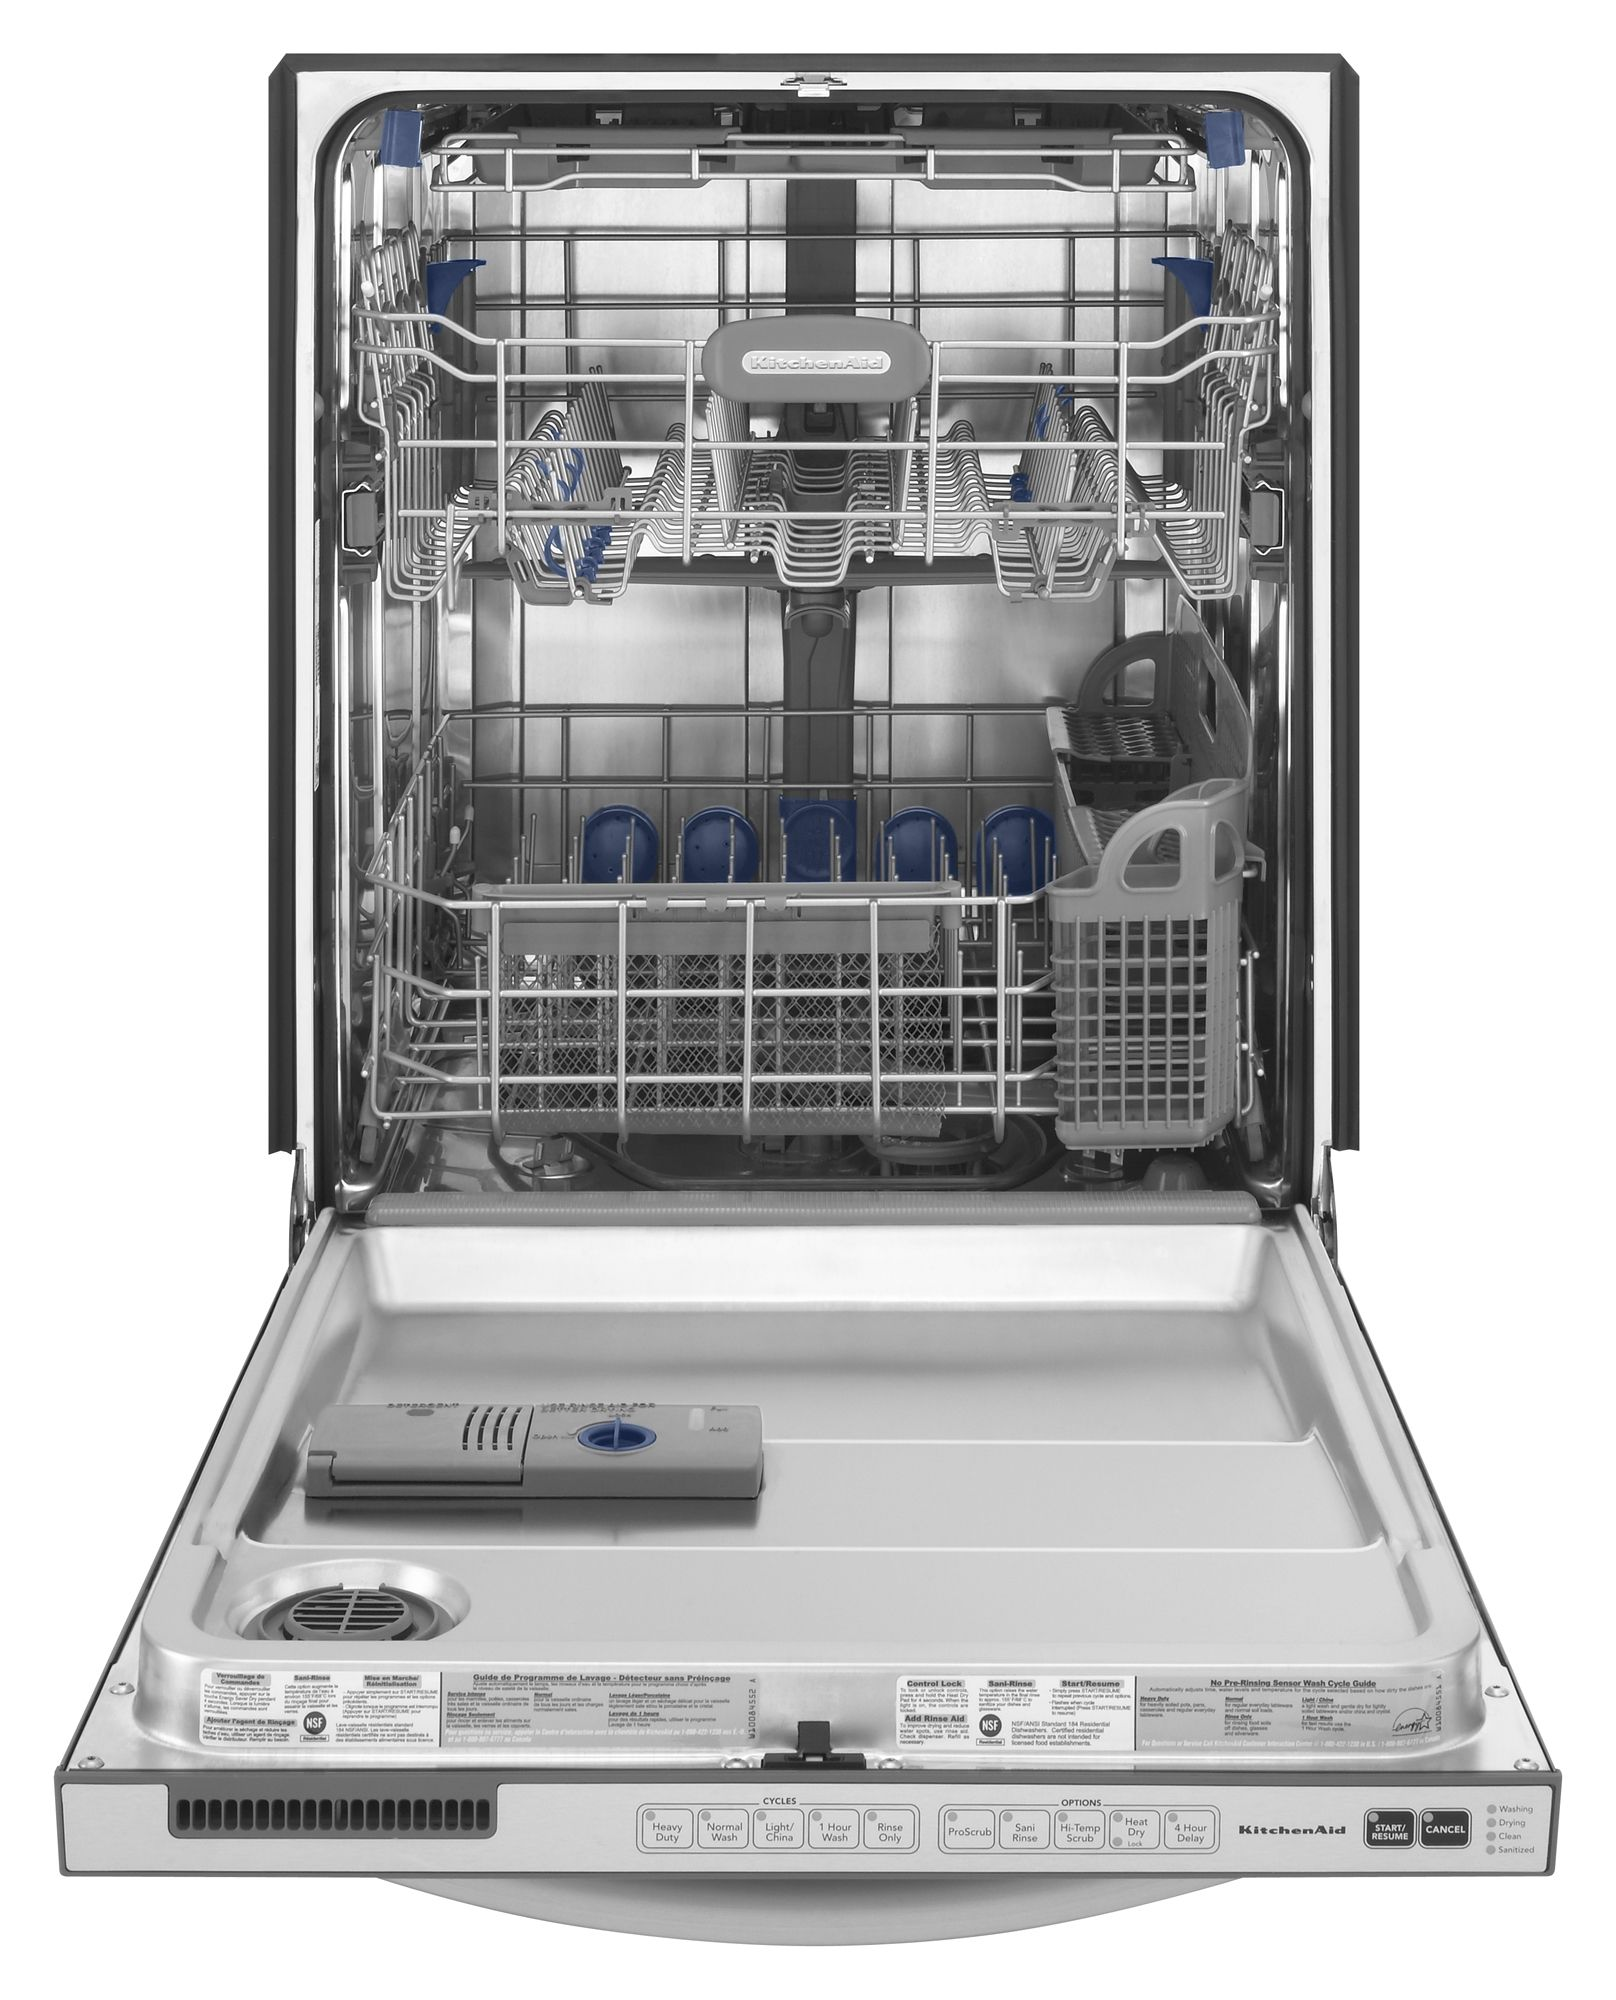 KitchenAid Superba® EQ Series 24 in. Built-In Dishwasher with Pro Scrub® (KUDE70CV)